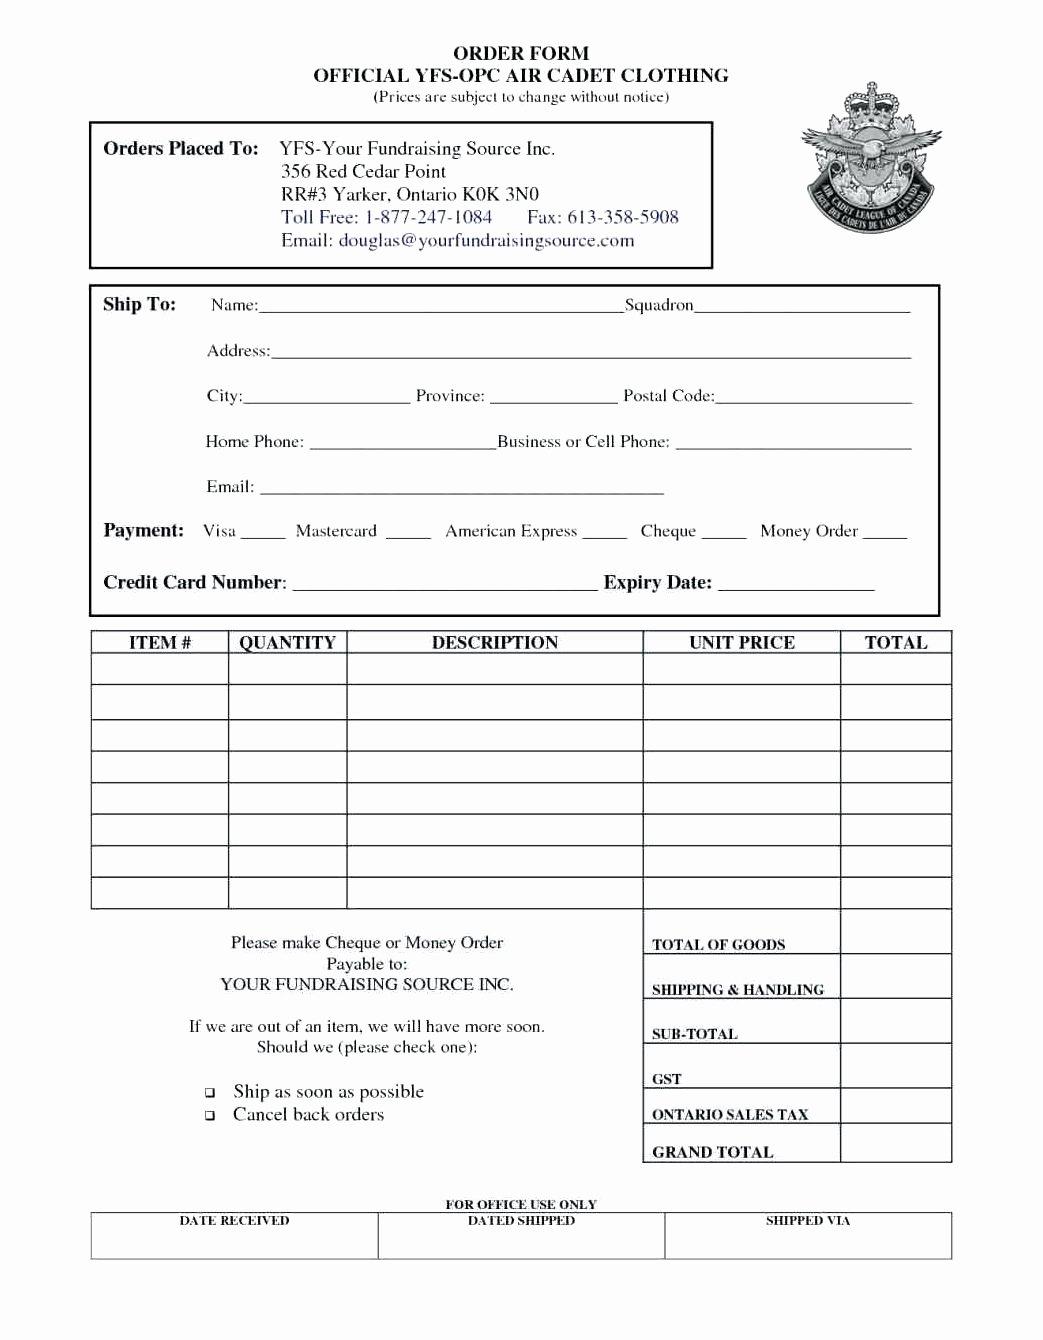 Physician orders form Template Luxury Physician order form Template – Versatolelive